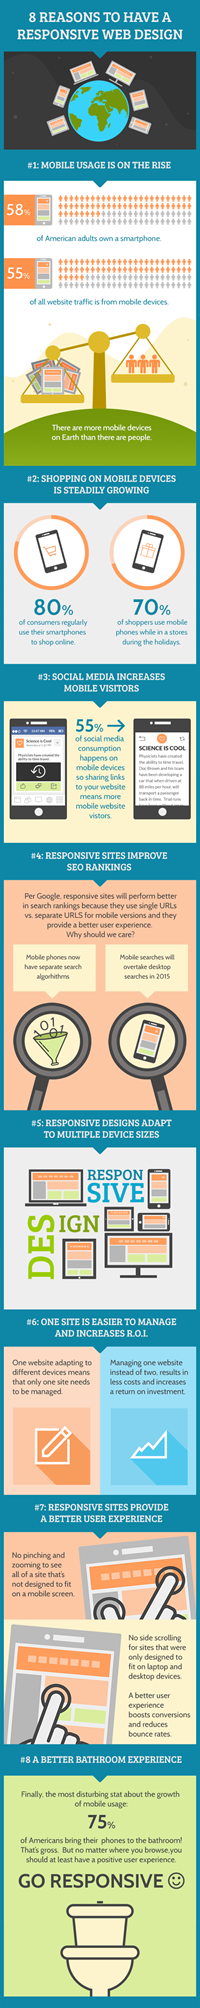 8 Reasons to Have a Mobile Responsive Web Design Infographic